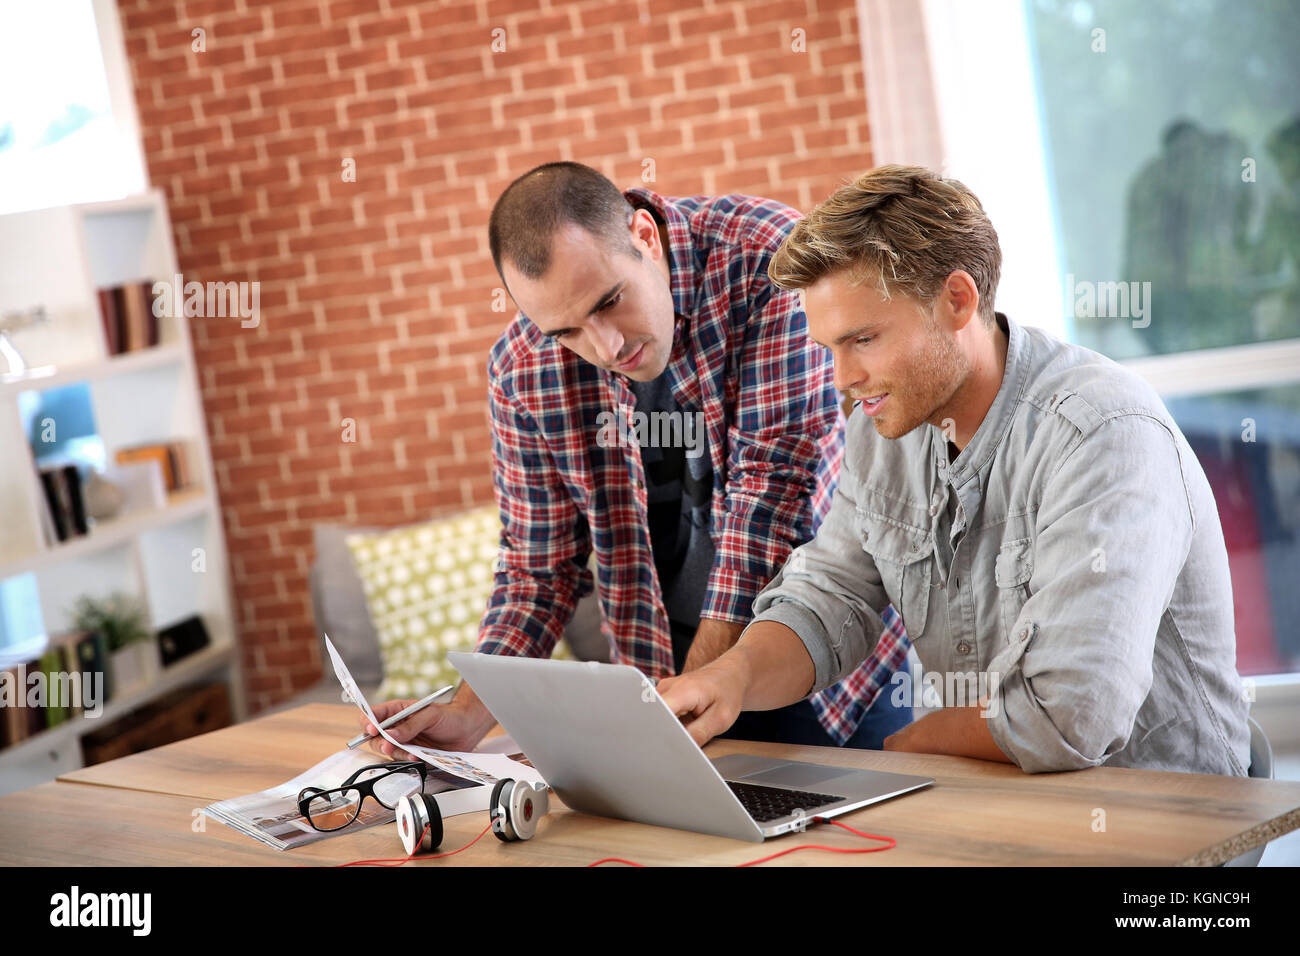 Young men studying in front of laptop - Stock Image